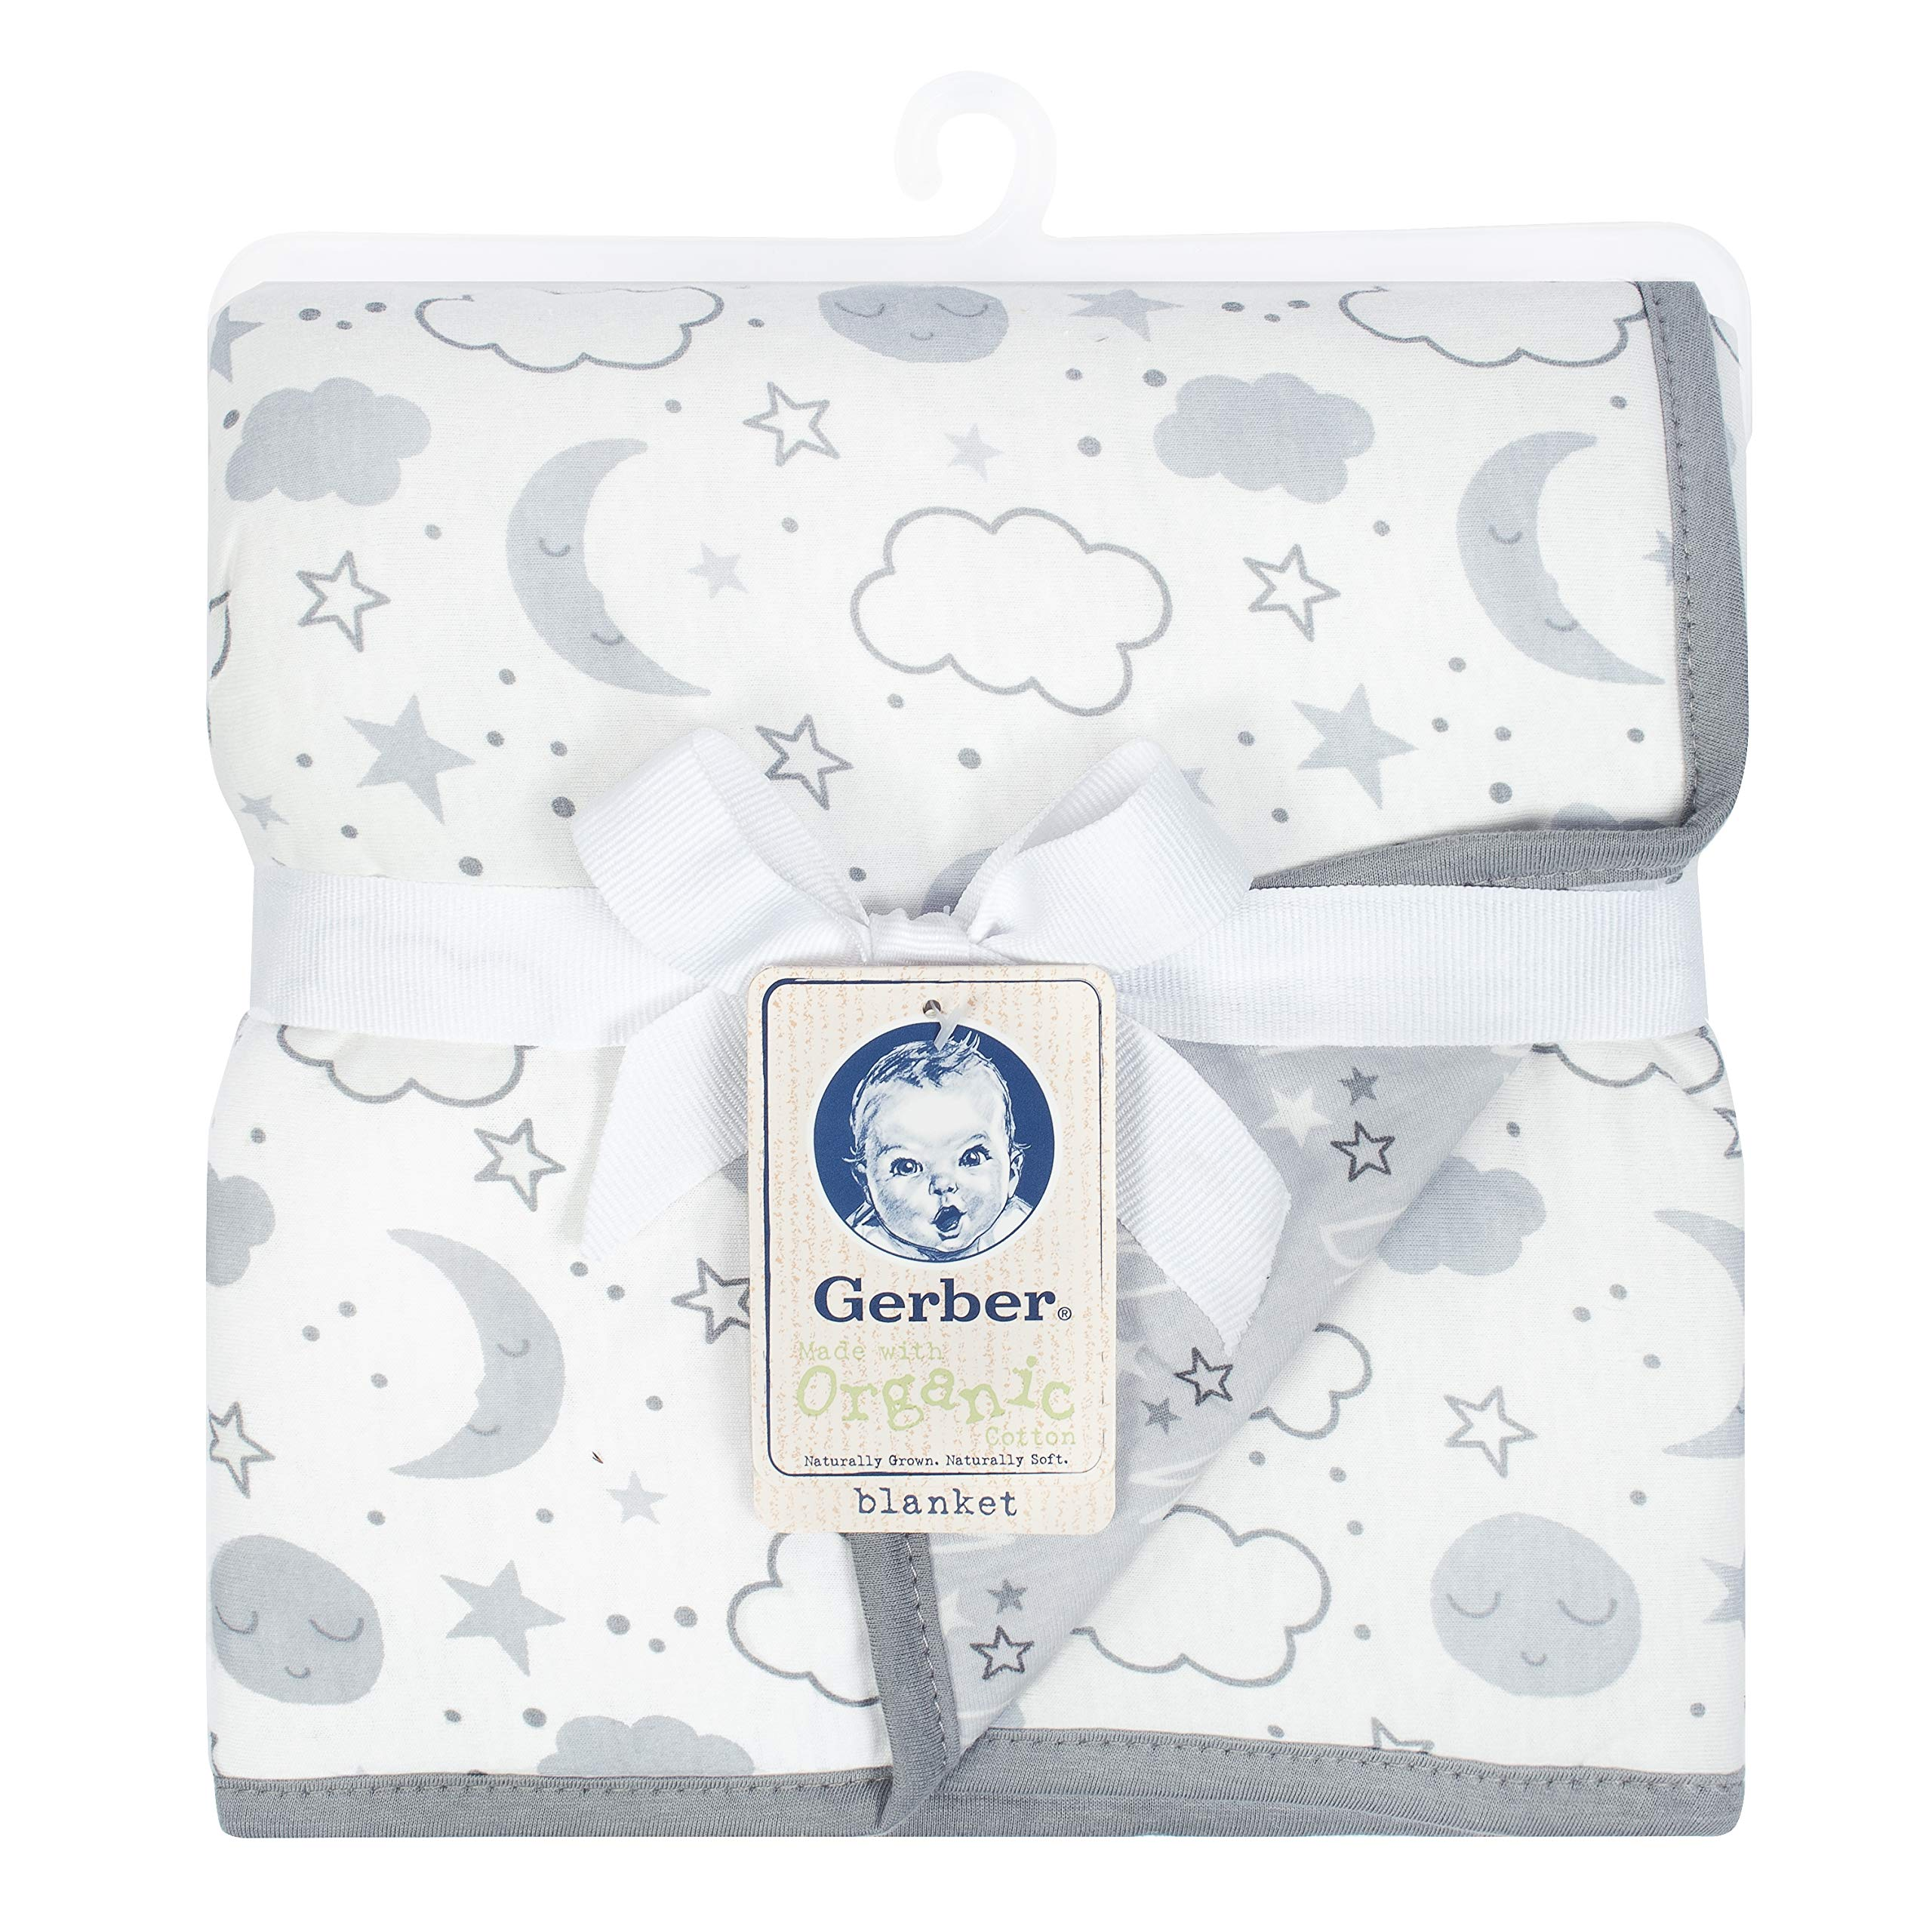 Gerber Organic 2-Ply Blanket, Grey Clouds, One Size